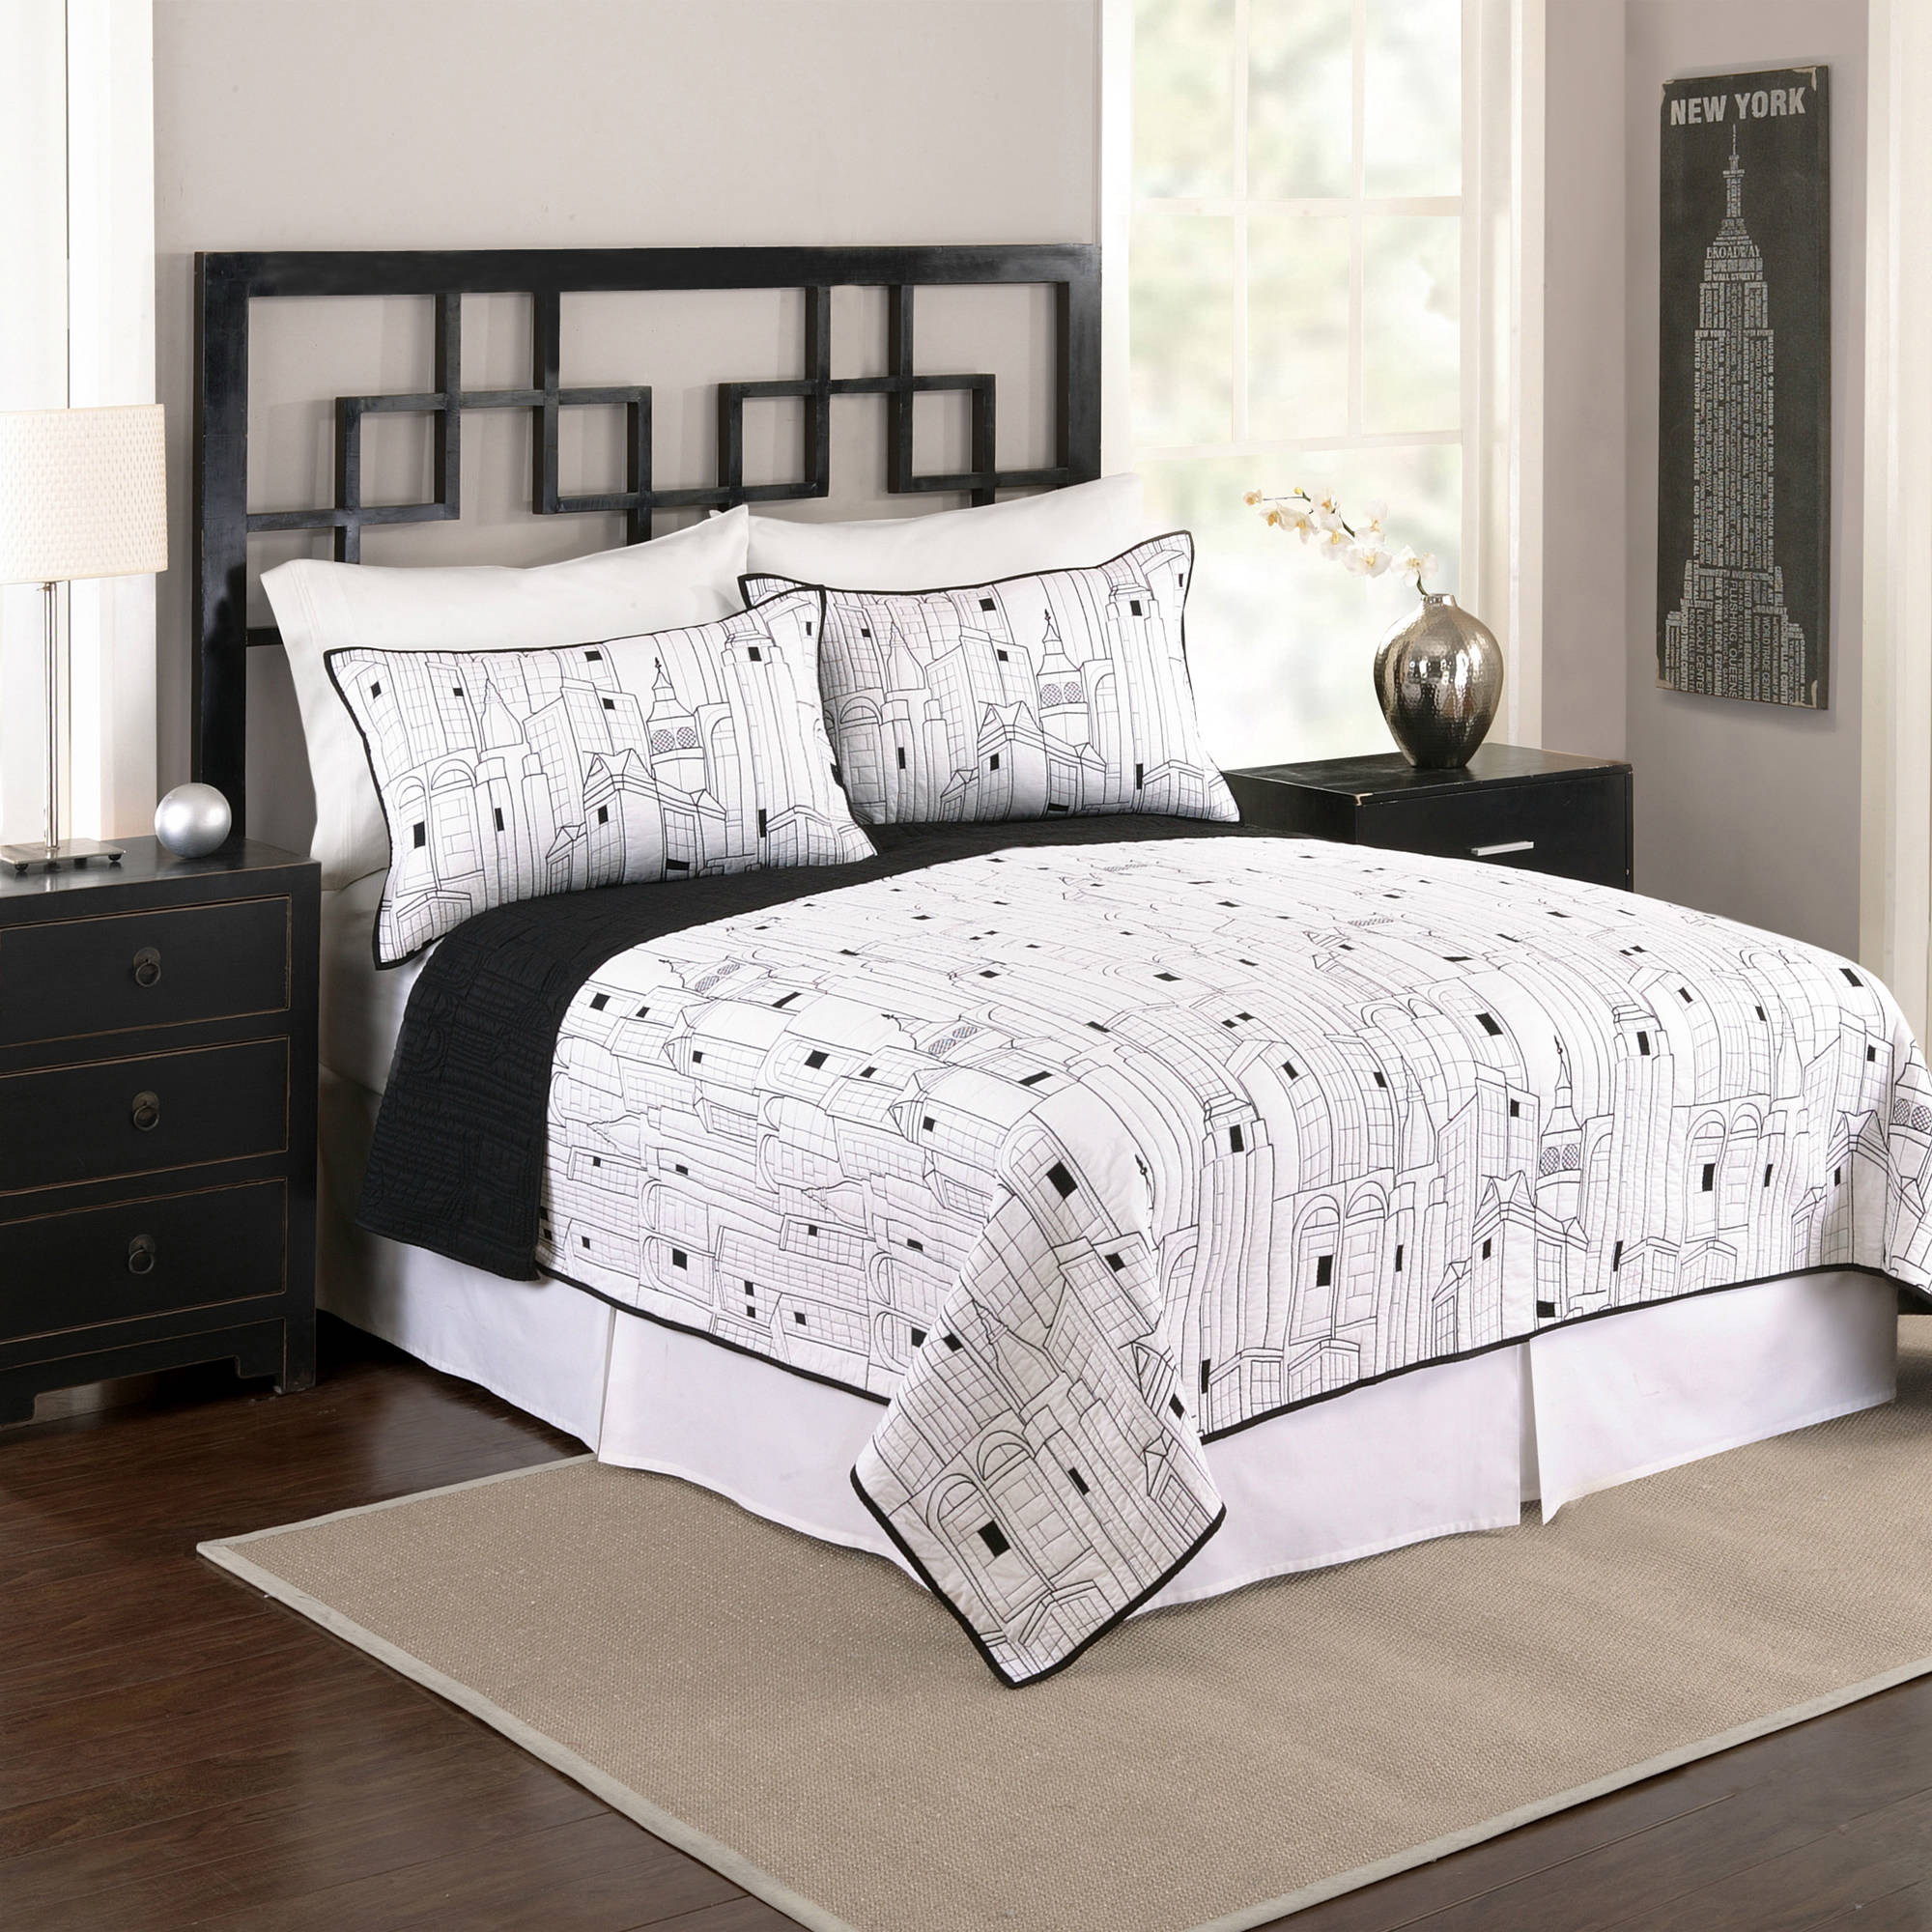 Better Homes and Gardens City Life Bedding Quilt Collection